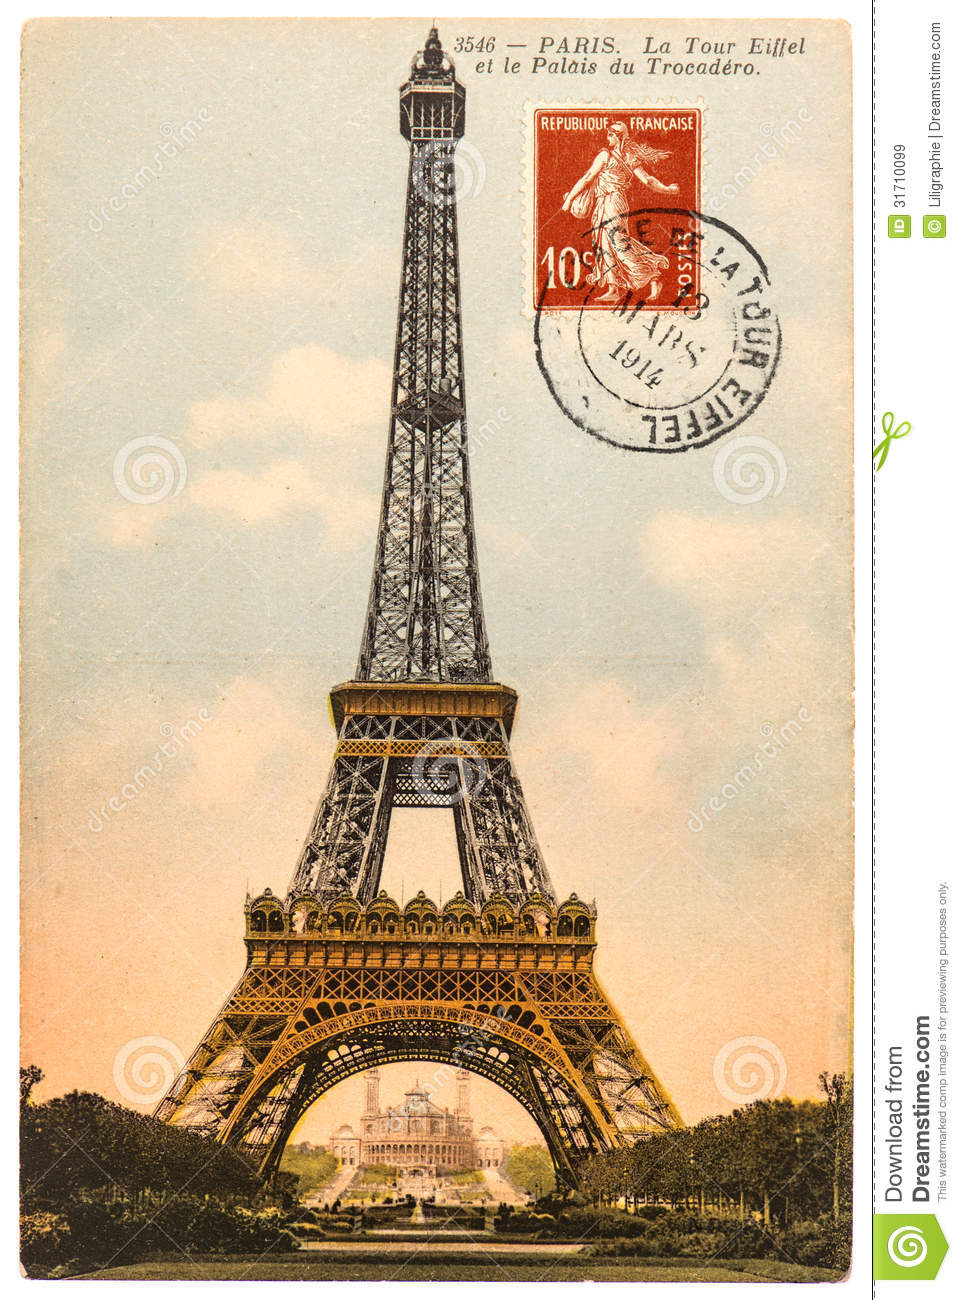 Vintage Postcard With Eiffel Tower In Paris Stock Image